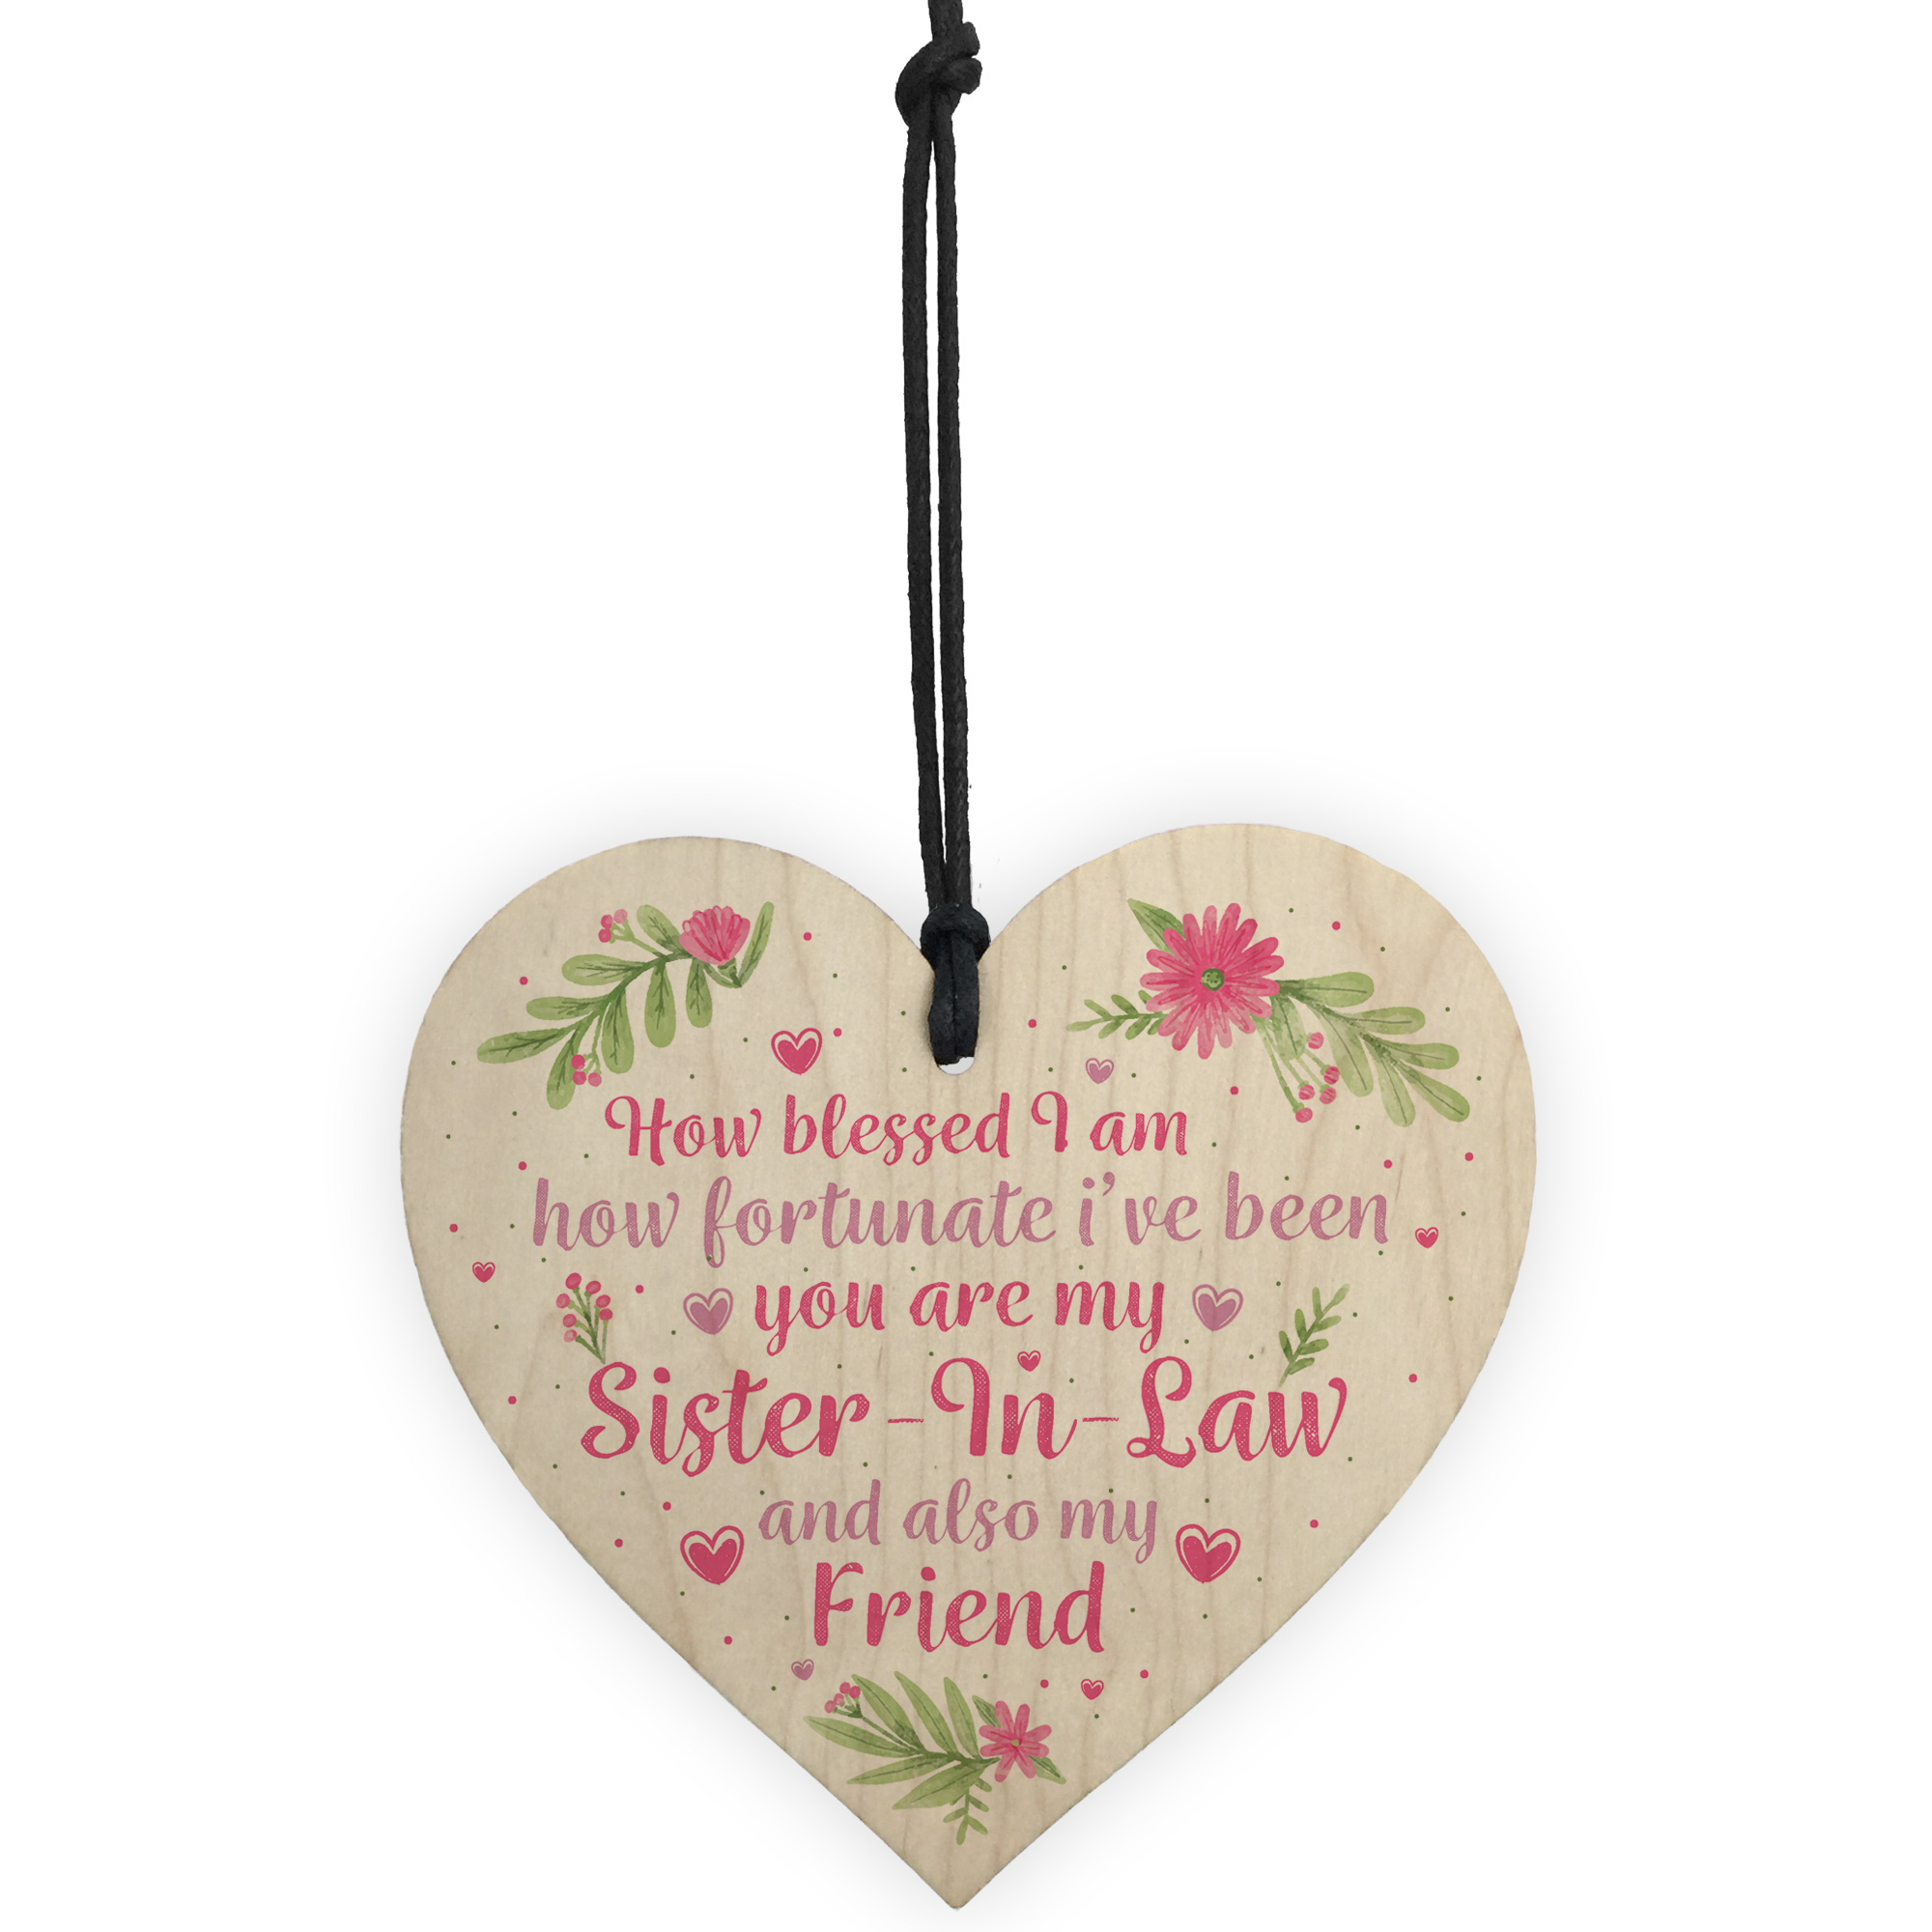 Details About Sister In Law Gift Wooden Heart Chic Plaque Keepsake Birthday Thank You